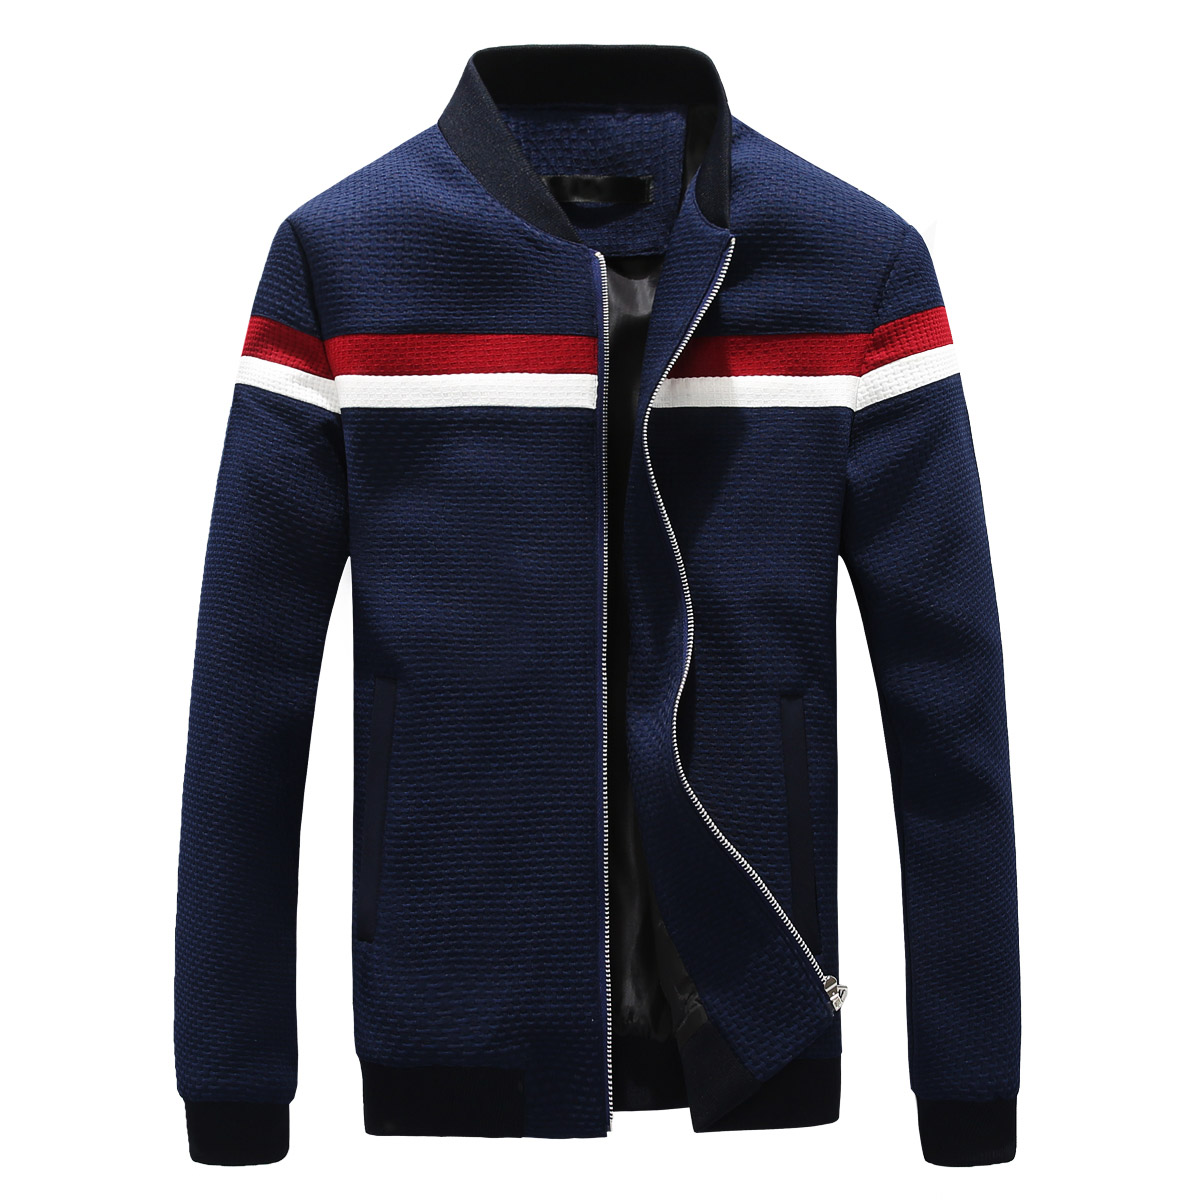 Spring Casual Baseball Jacket Men <font><b>Crewneck</b></font> Zipper Coats Striped Fashion Streetwear Slim Fit Male Bomber Jacket Cadigans Yeezy